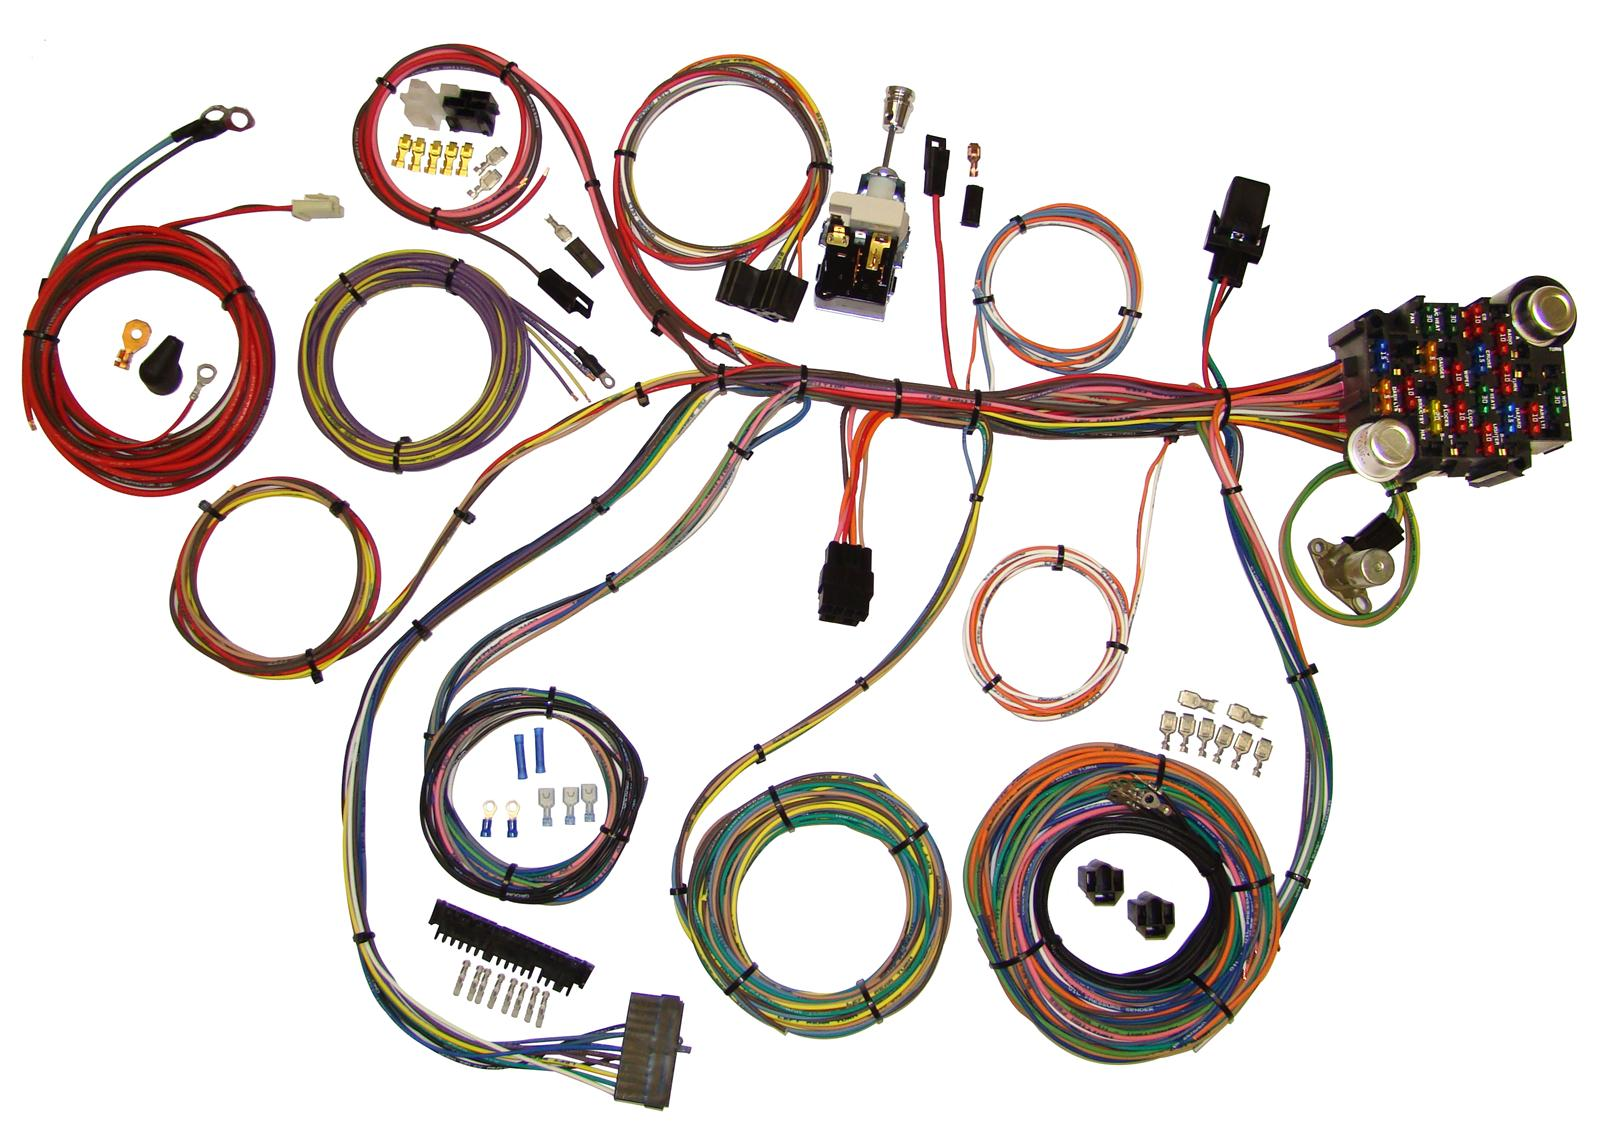 hight resolution of american autowire power plus 20 wiring harness kits 510008 free shipping on orders over 99 at summit racing